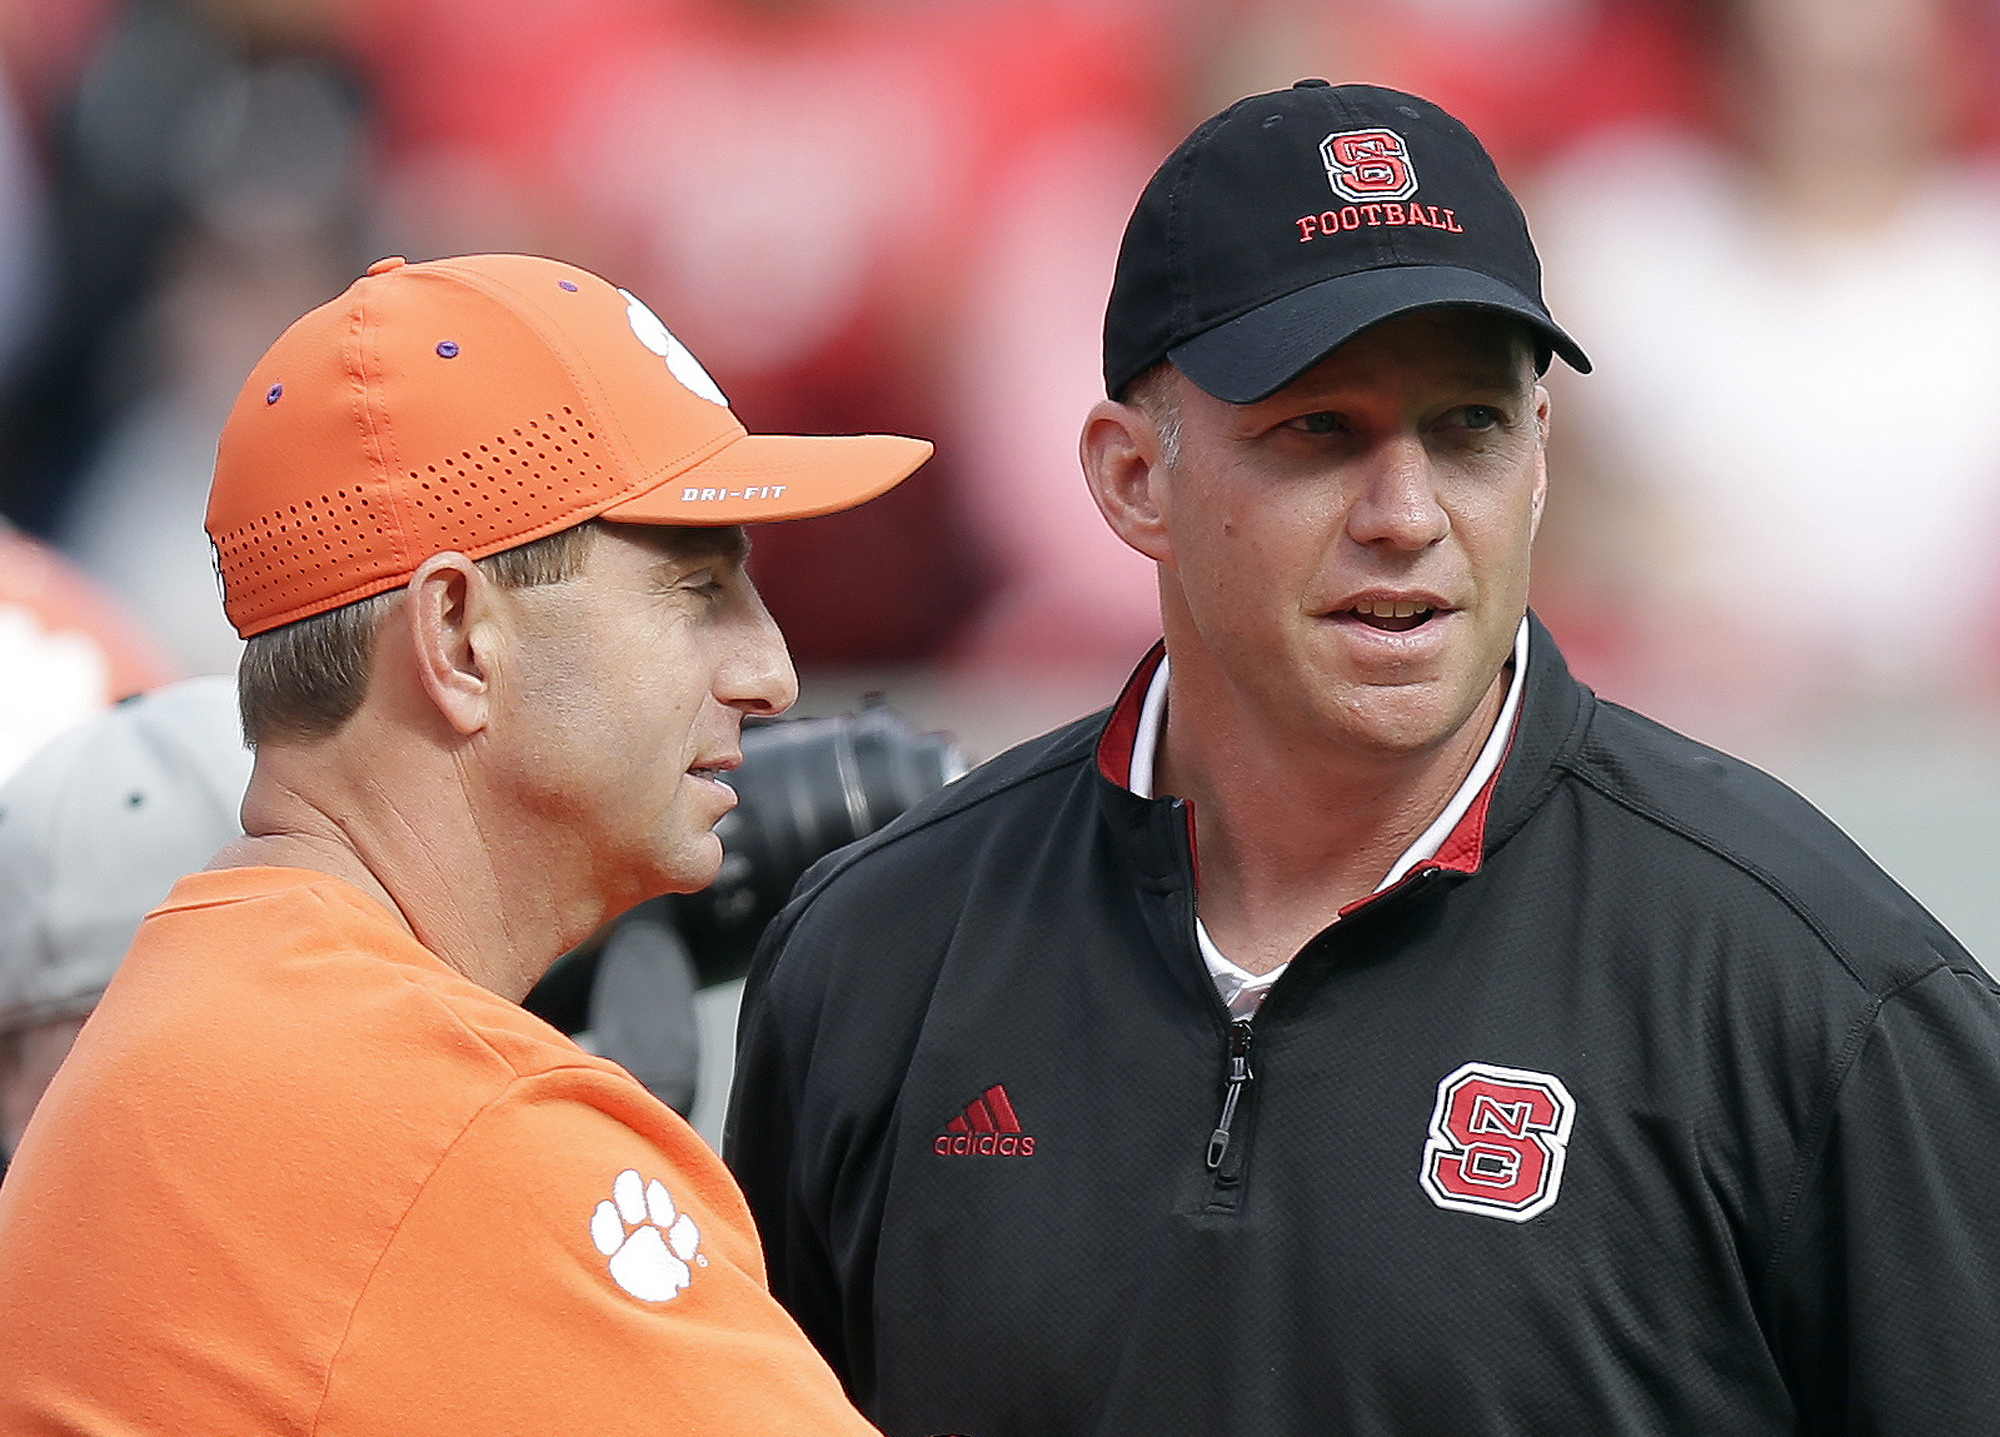 FILE - In this Oct. 31, 2015, file photo, Clemson coach Dabo Swinney, left, and North Carolina State coach Dave Doeren chat before an NCAA college football game in Raleigh, N.C. NC State is looking to turn the Atlantic Coast Conference from a runaway into